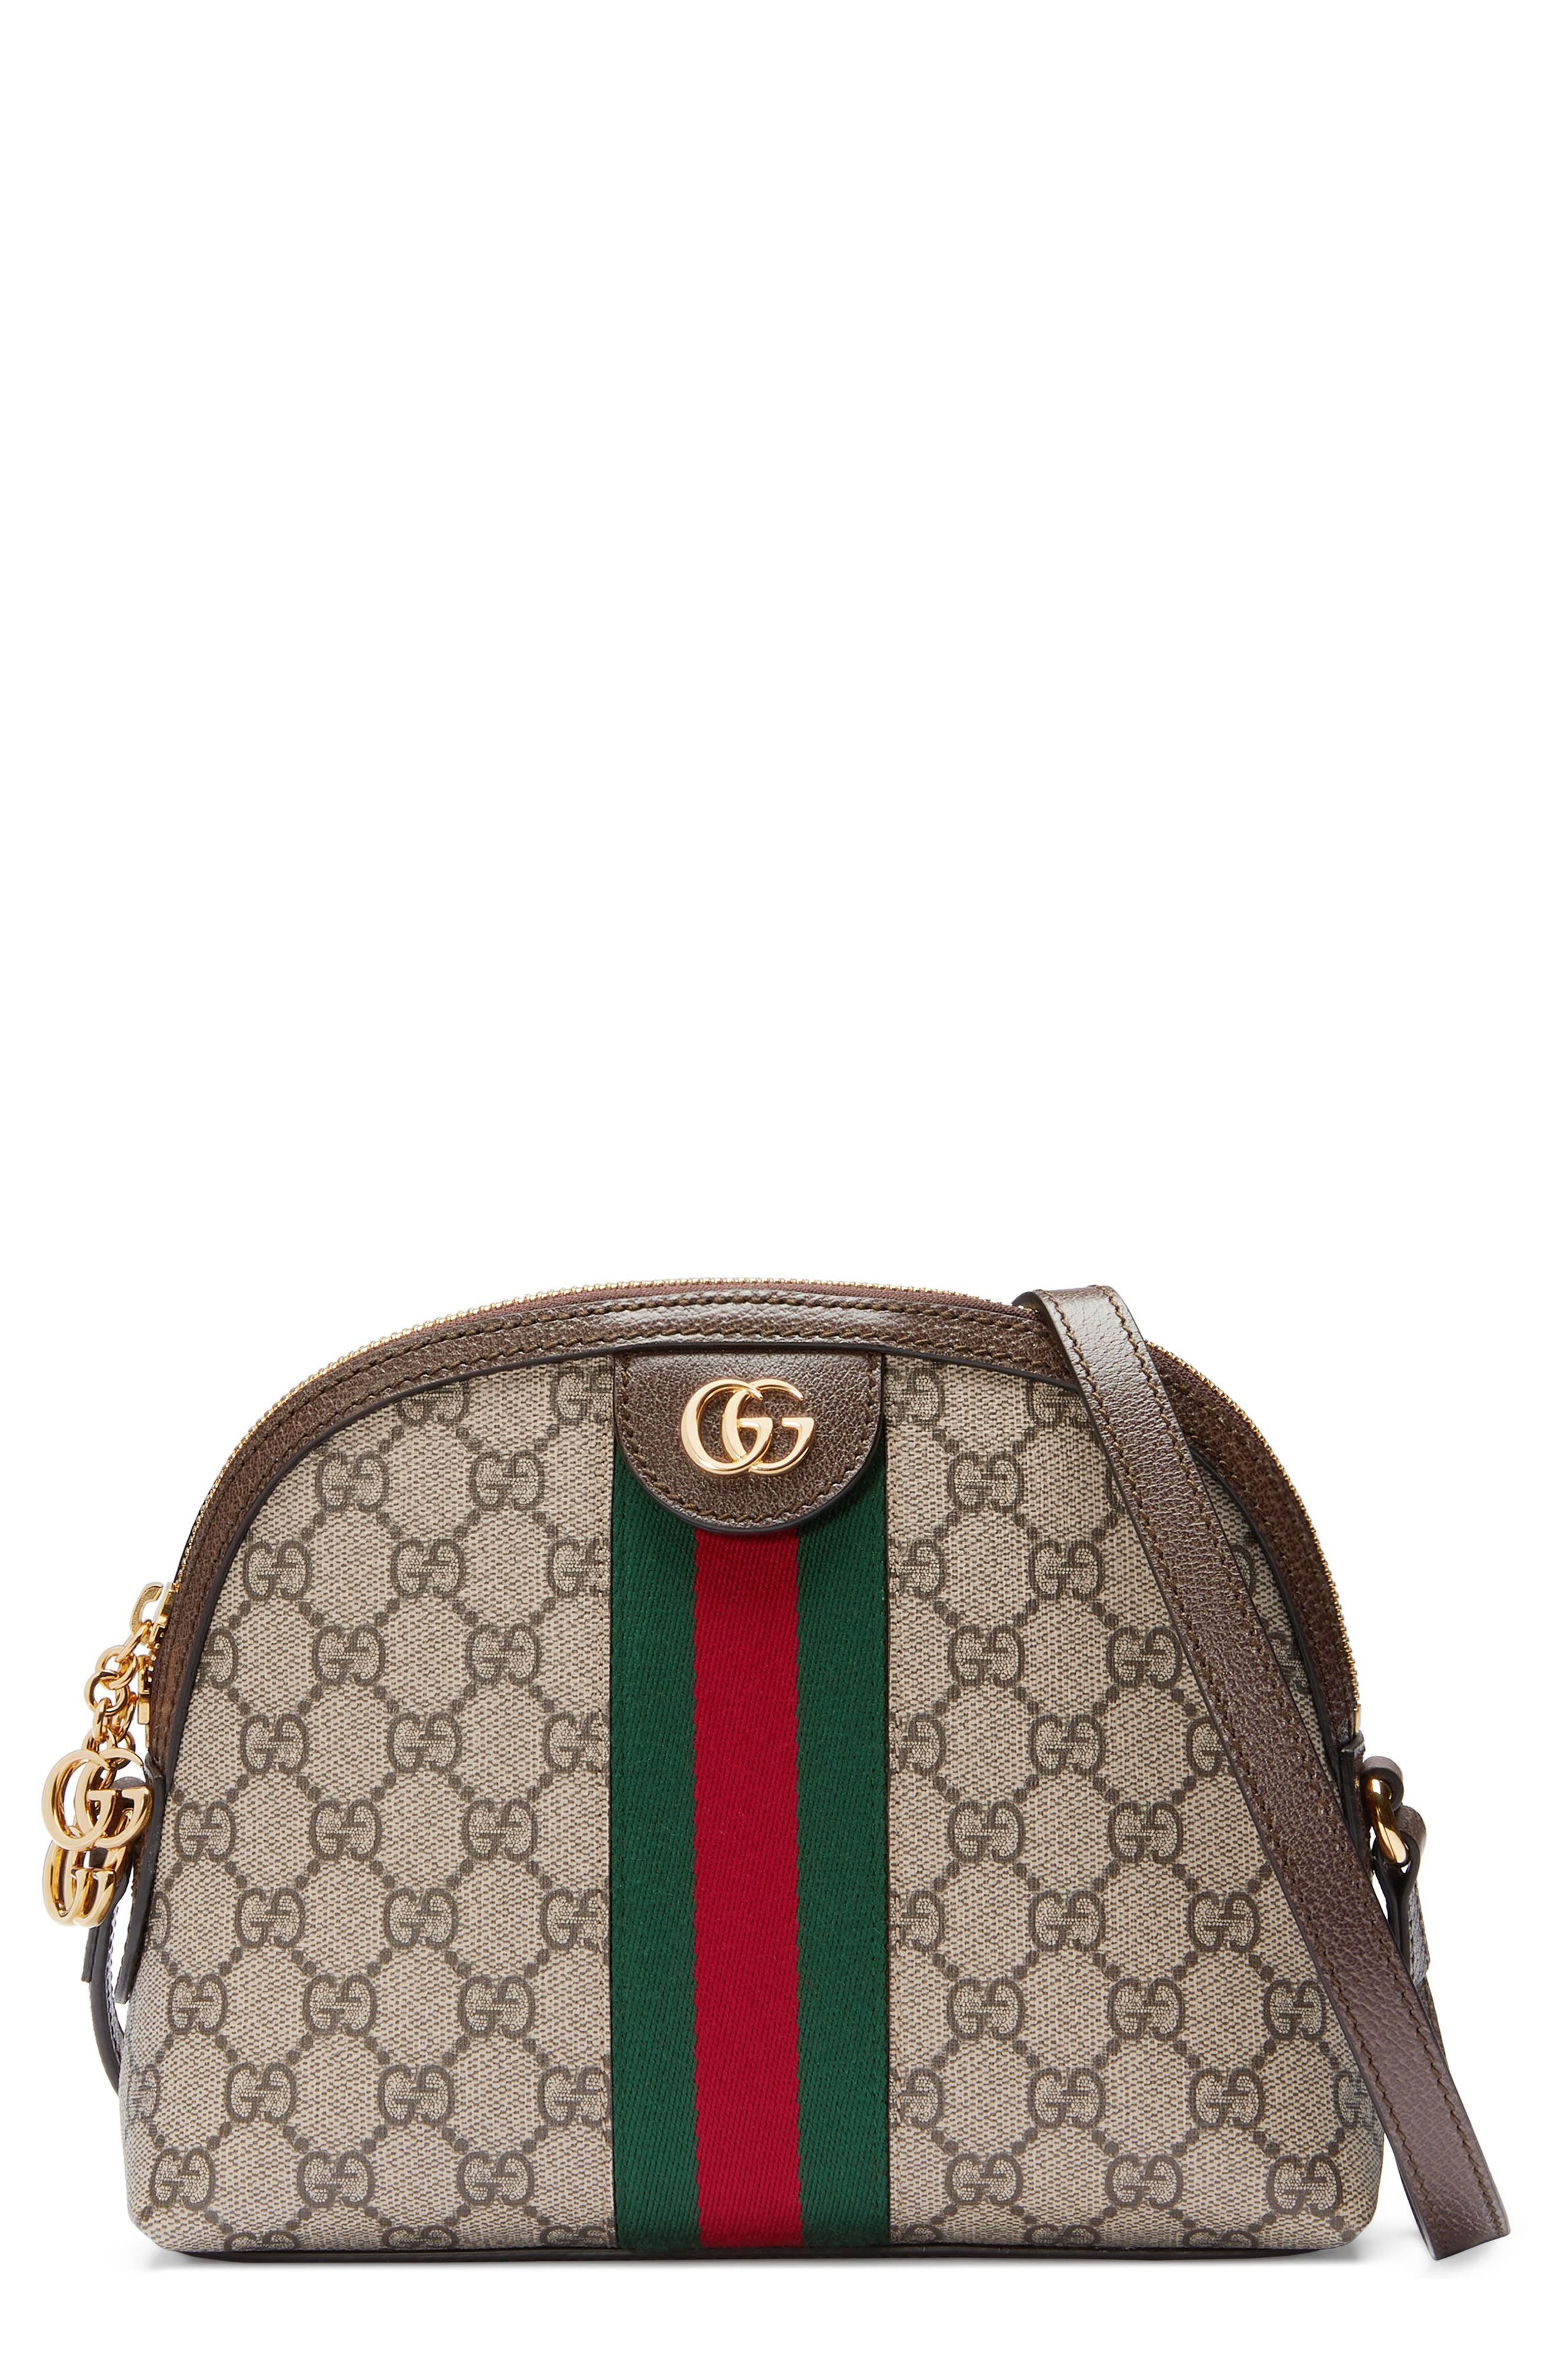 GUCCI, GG Supreme Canvas Shoulder Bag, Main thumbnail 1, color, BEIGE EBONY/ NERO/ RED